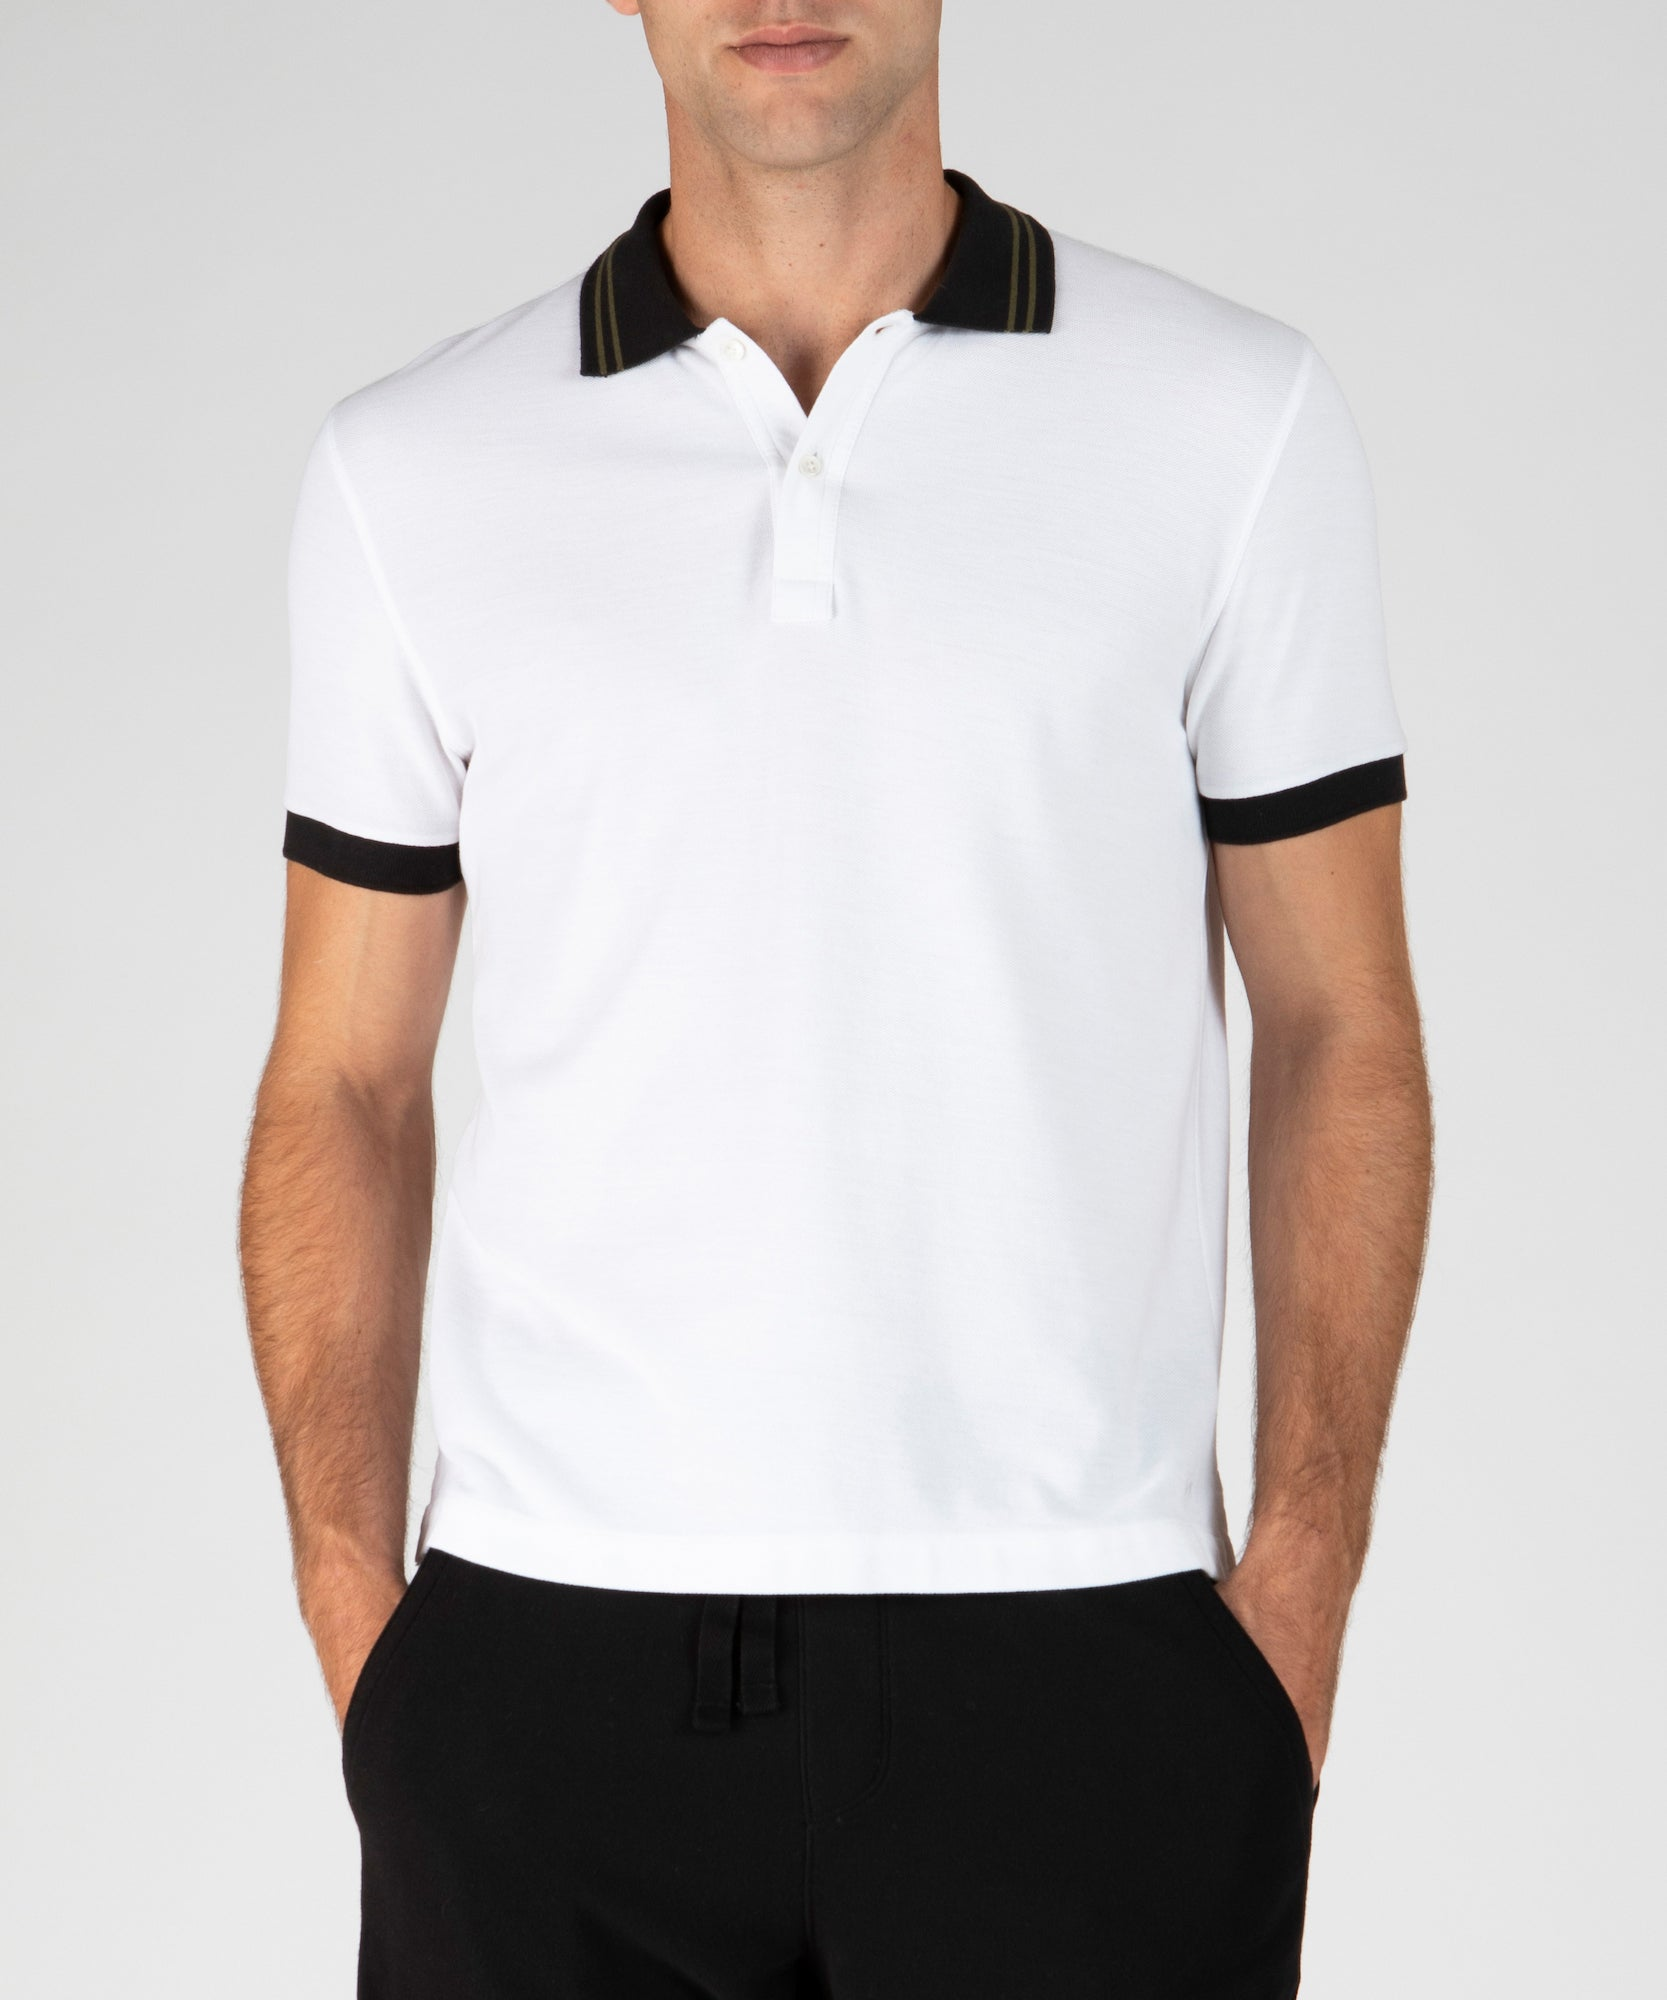 White Tipped Pique Polo - Men's Polo Shirt by ATM Anthony Thomas Melillo